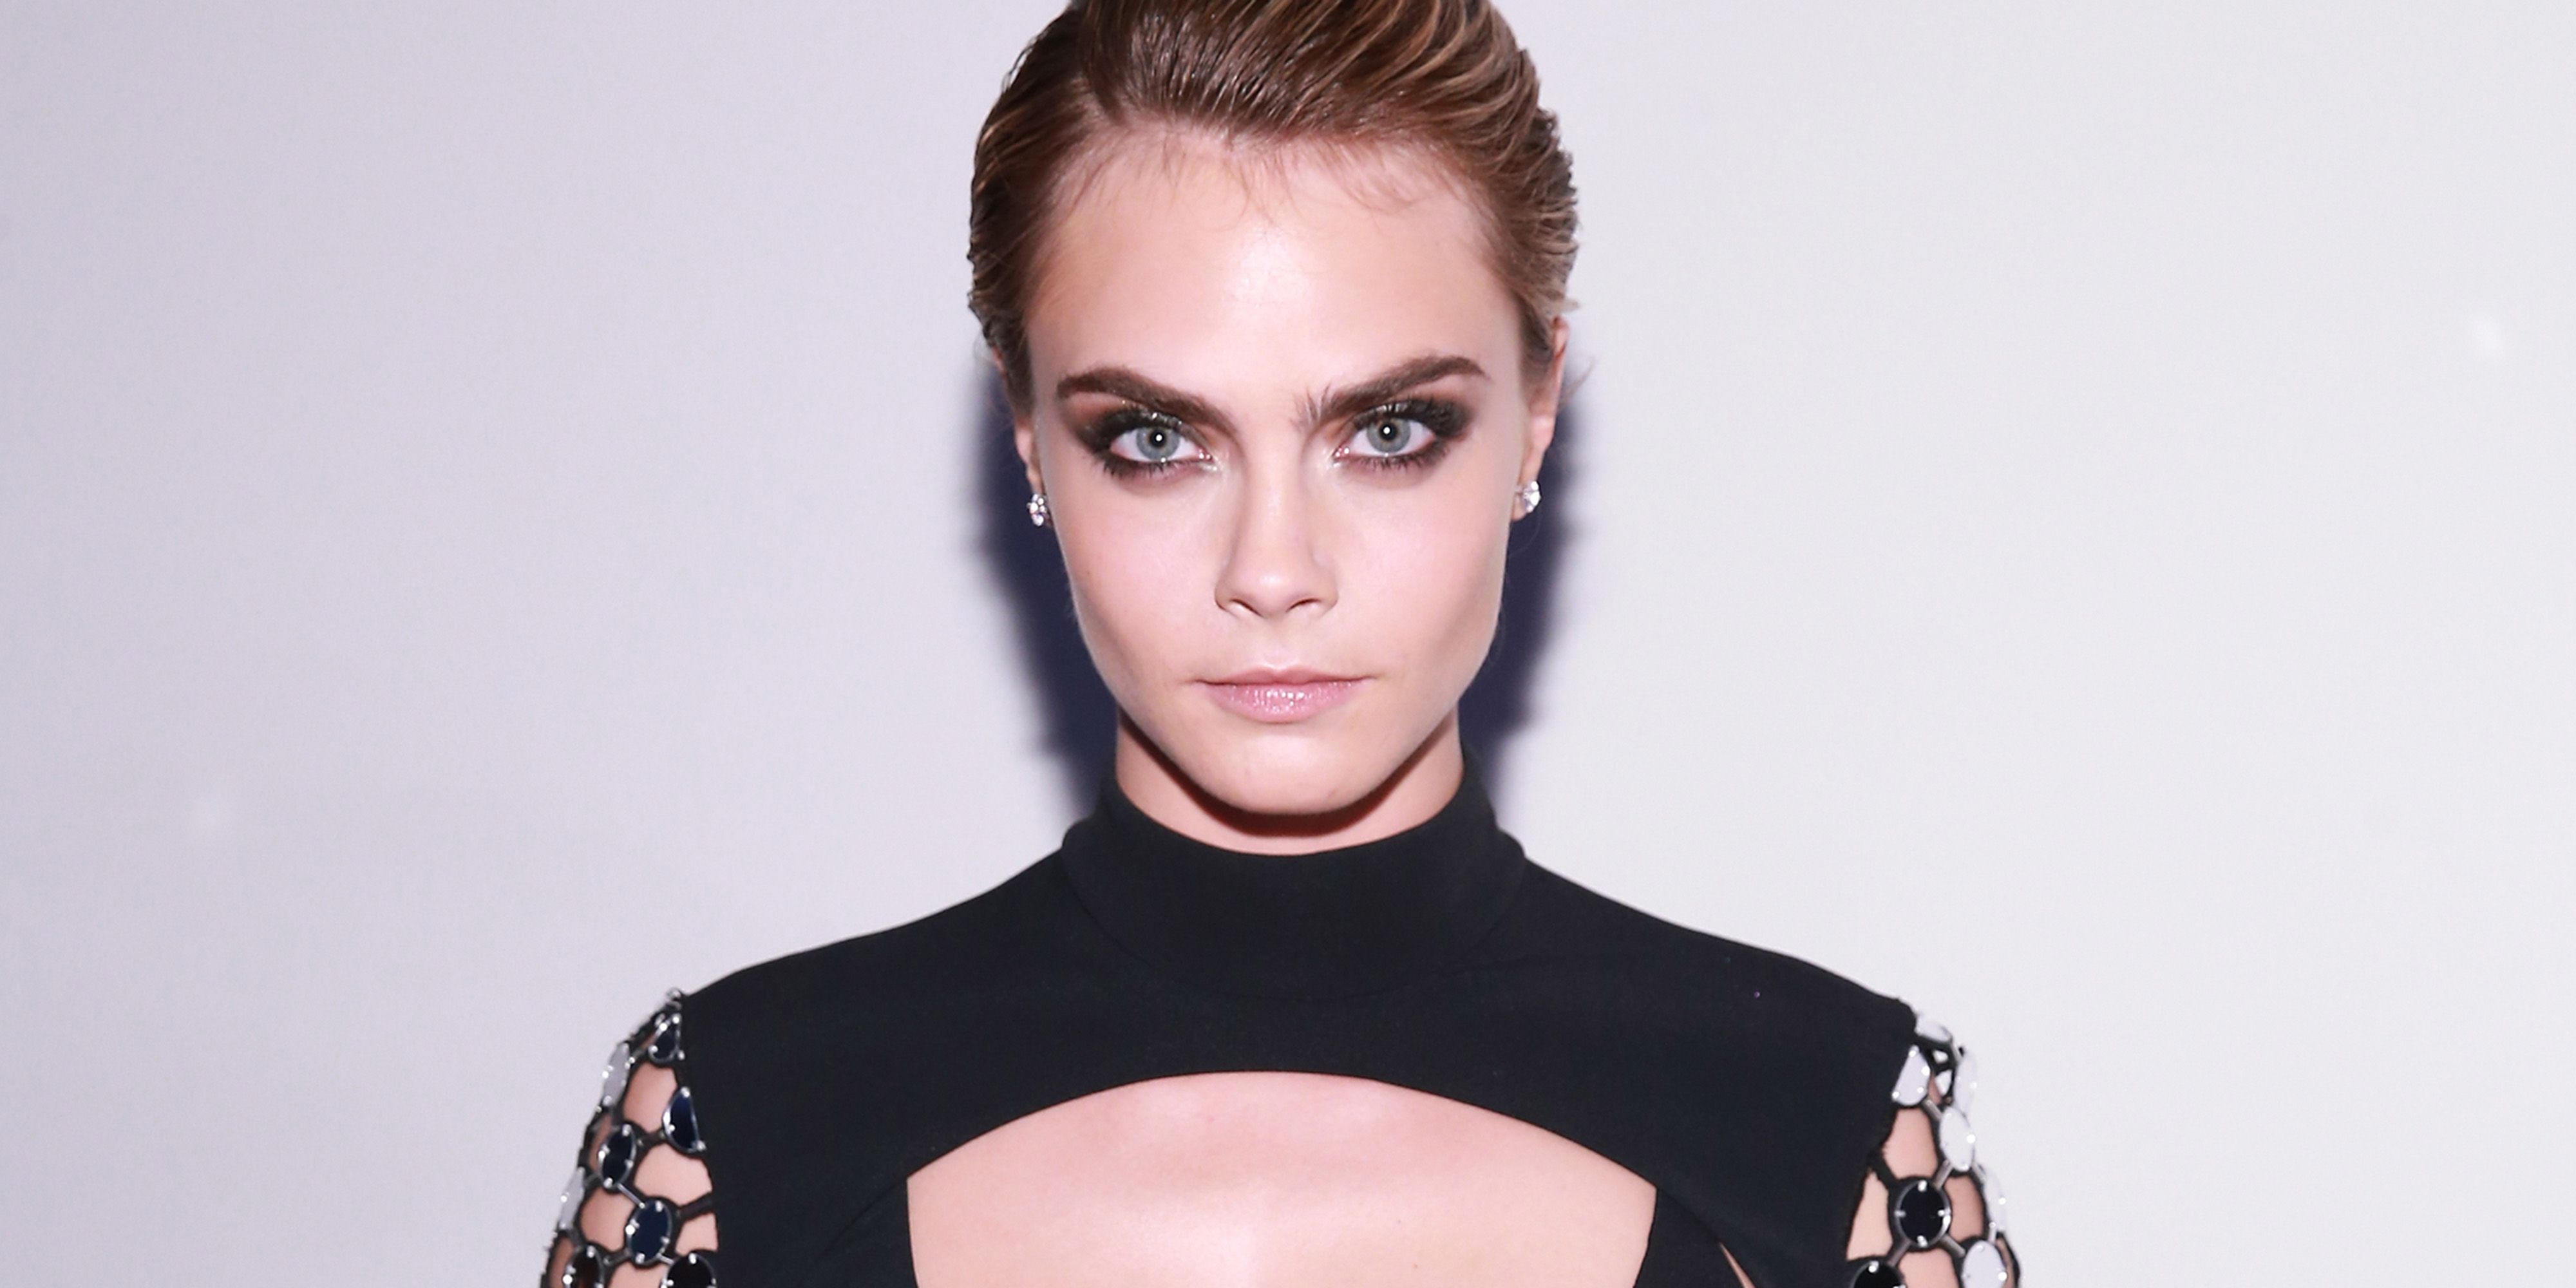 Cara Delevingne was told by Harvey Weinstein to get a fake boyfriend to make it in Hollywood